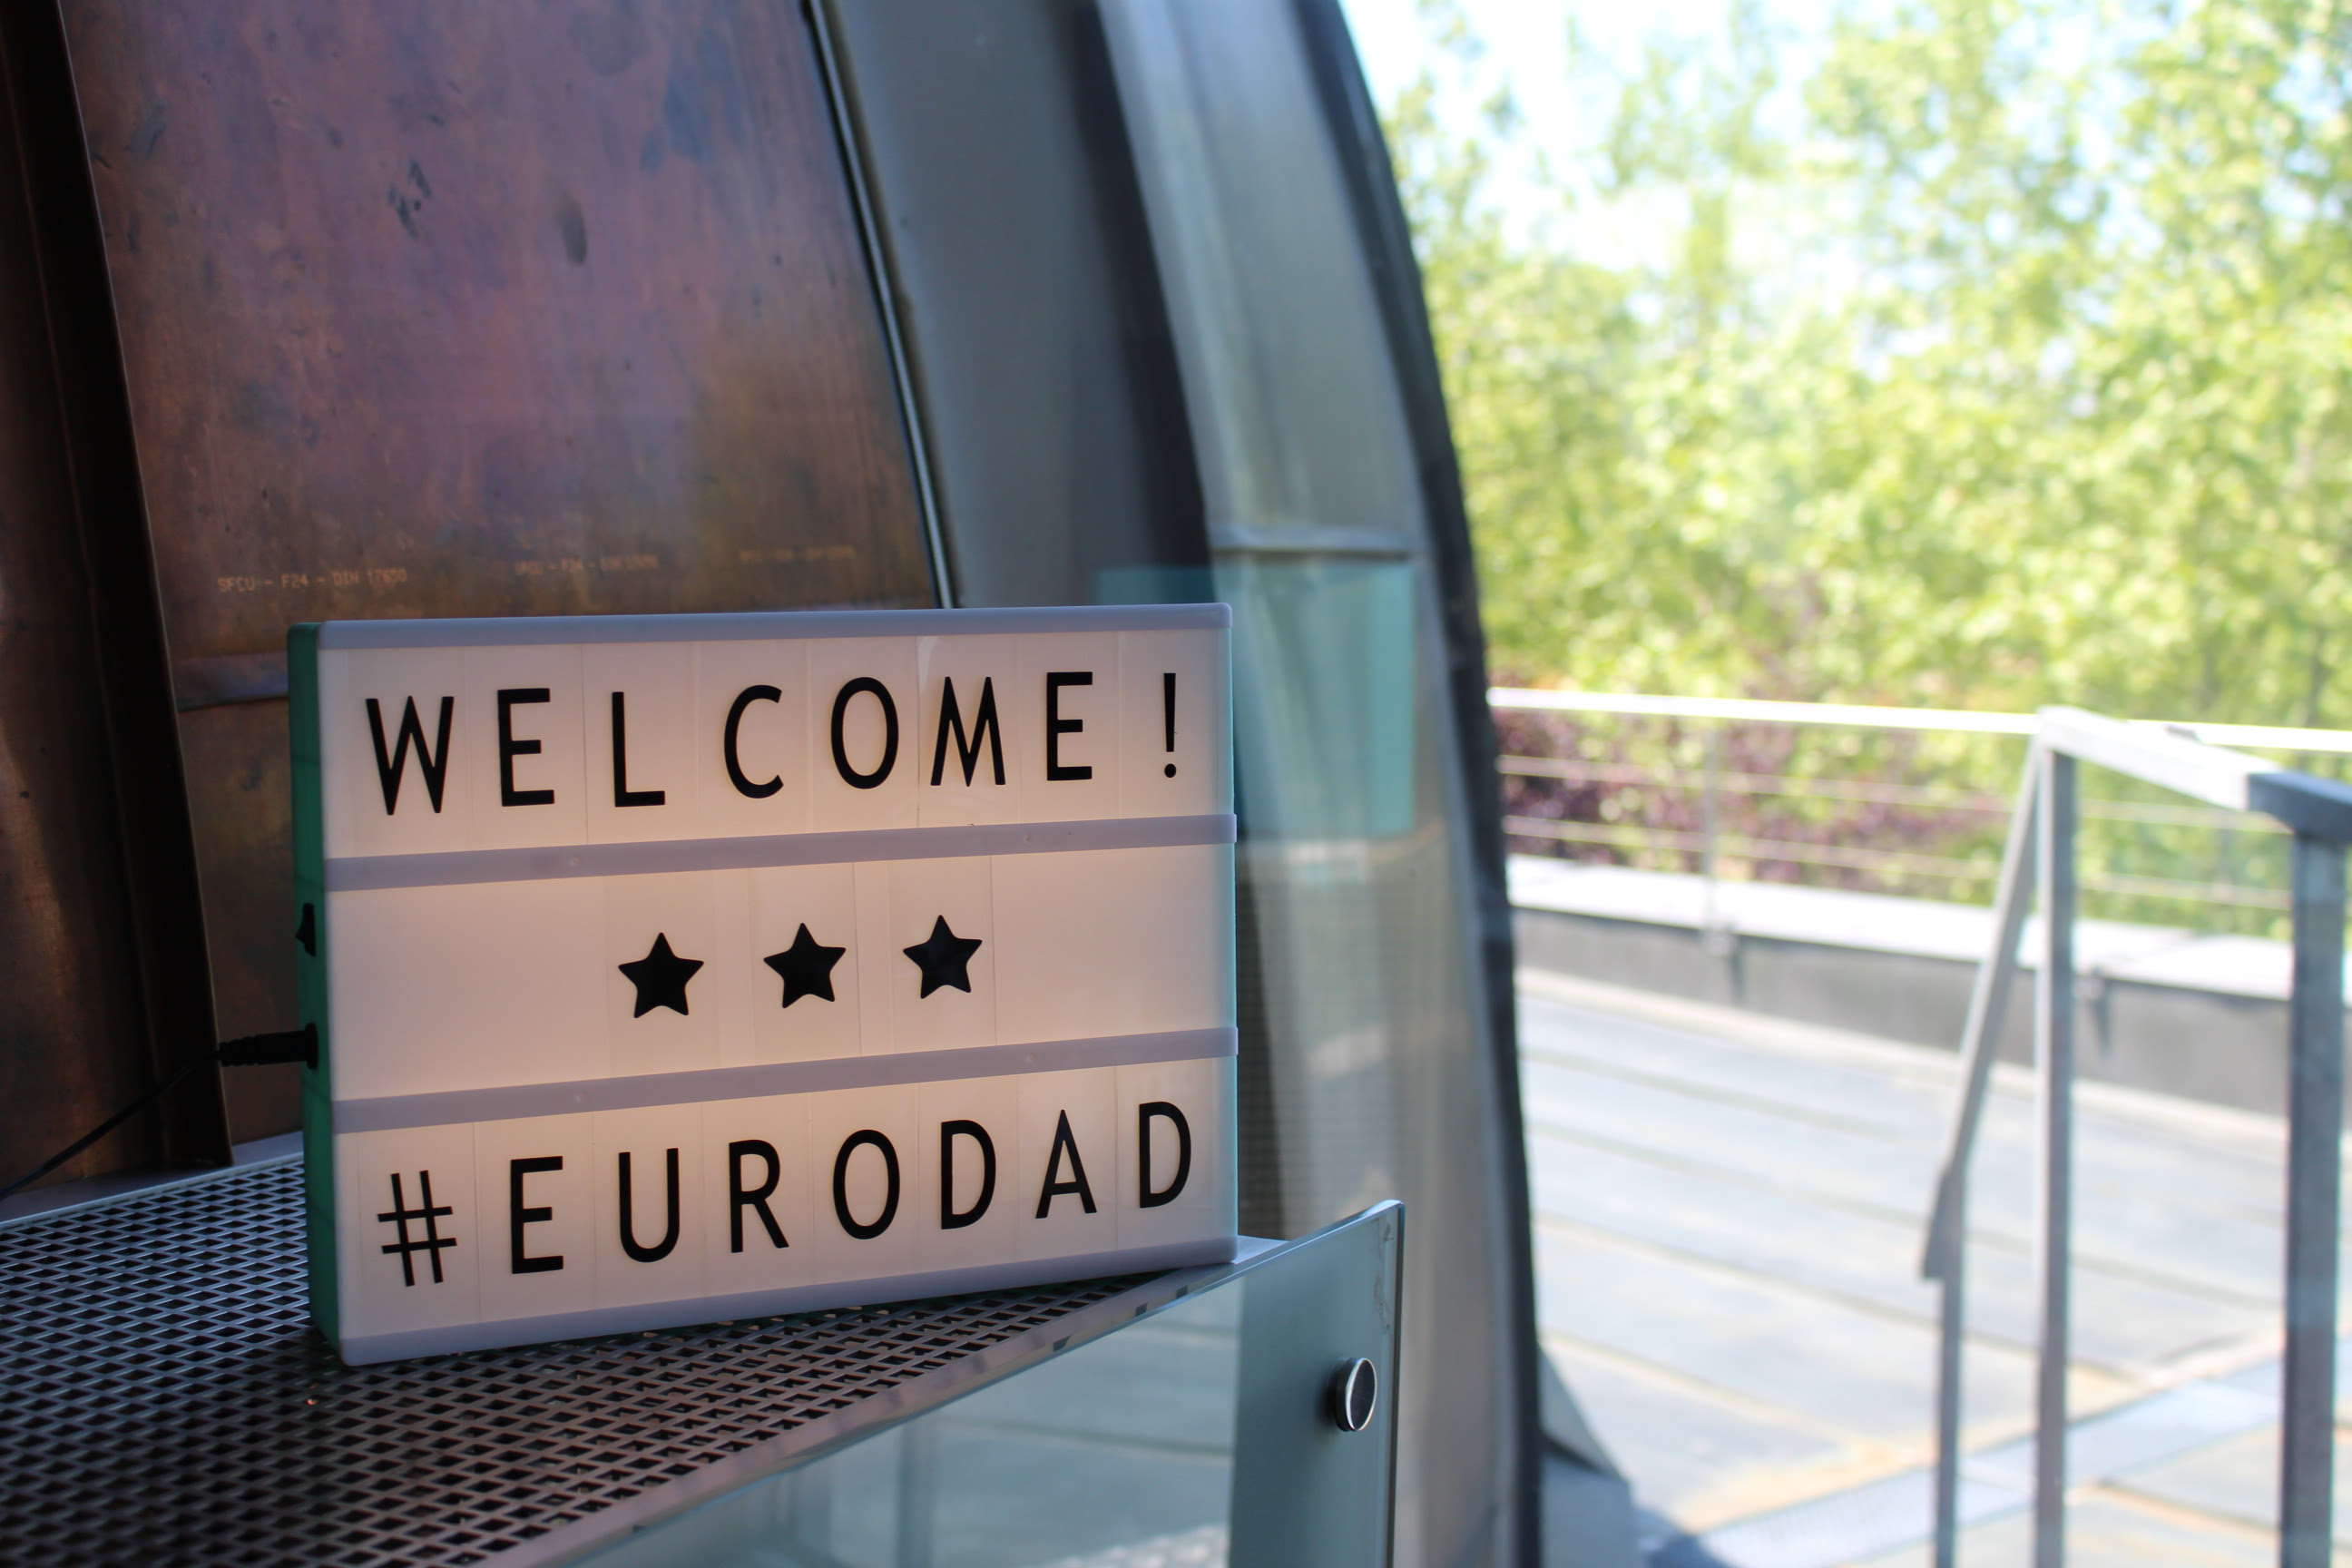 A small backlit sign reads Welcome! #Eurodad.